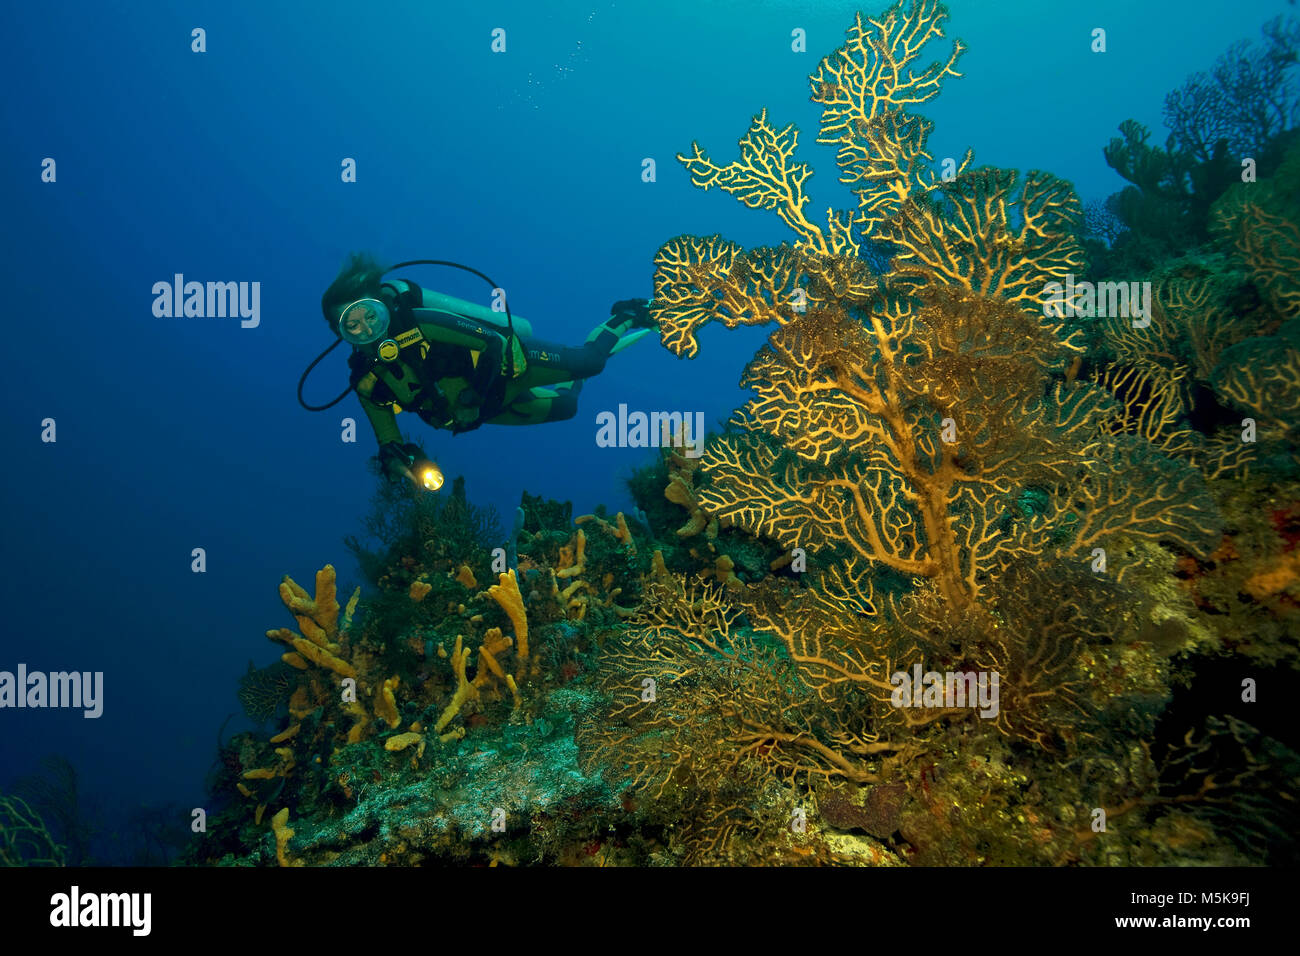 Scuba diver at a deep water sea fan, coral reef at Cozumel island, Mexico, Caribbean - Stock Image